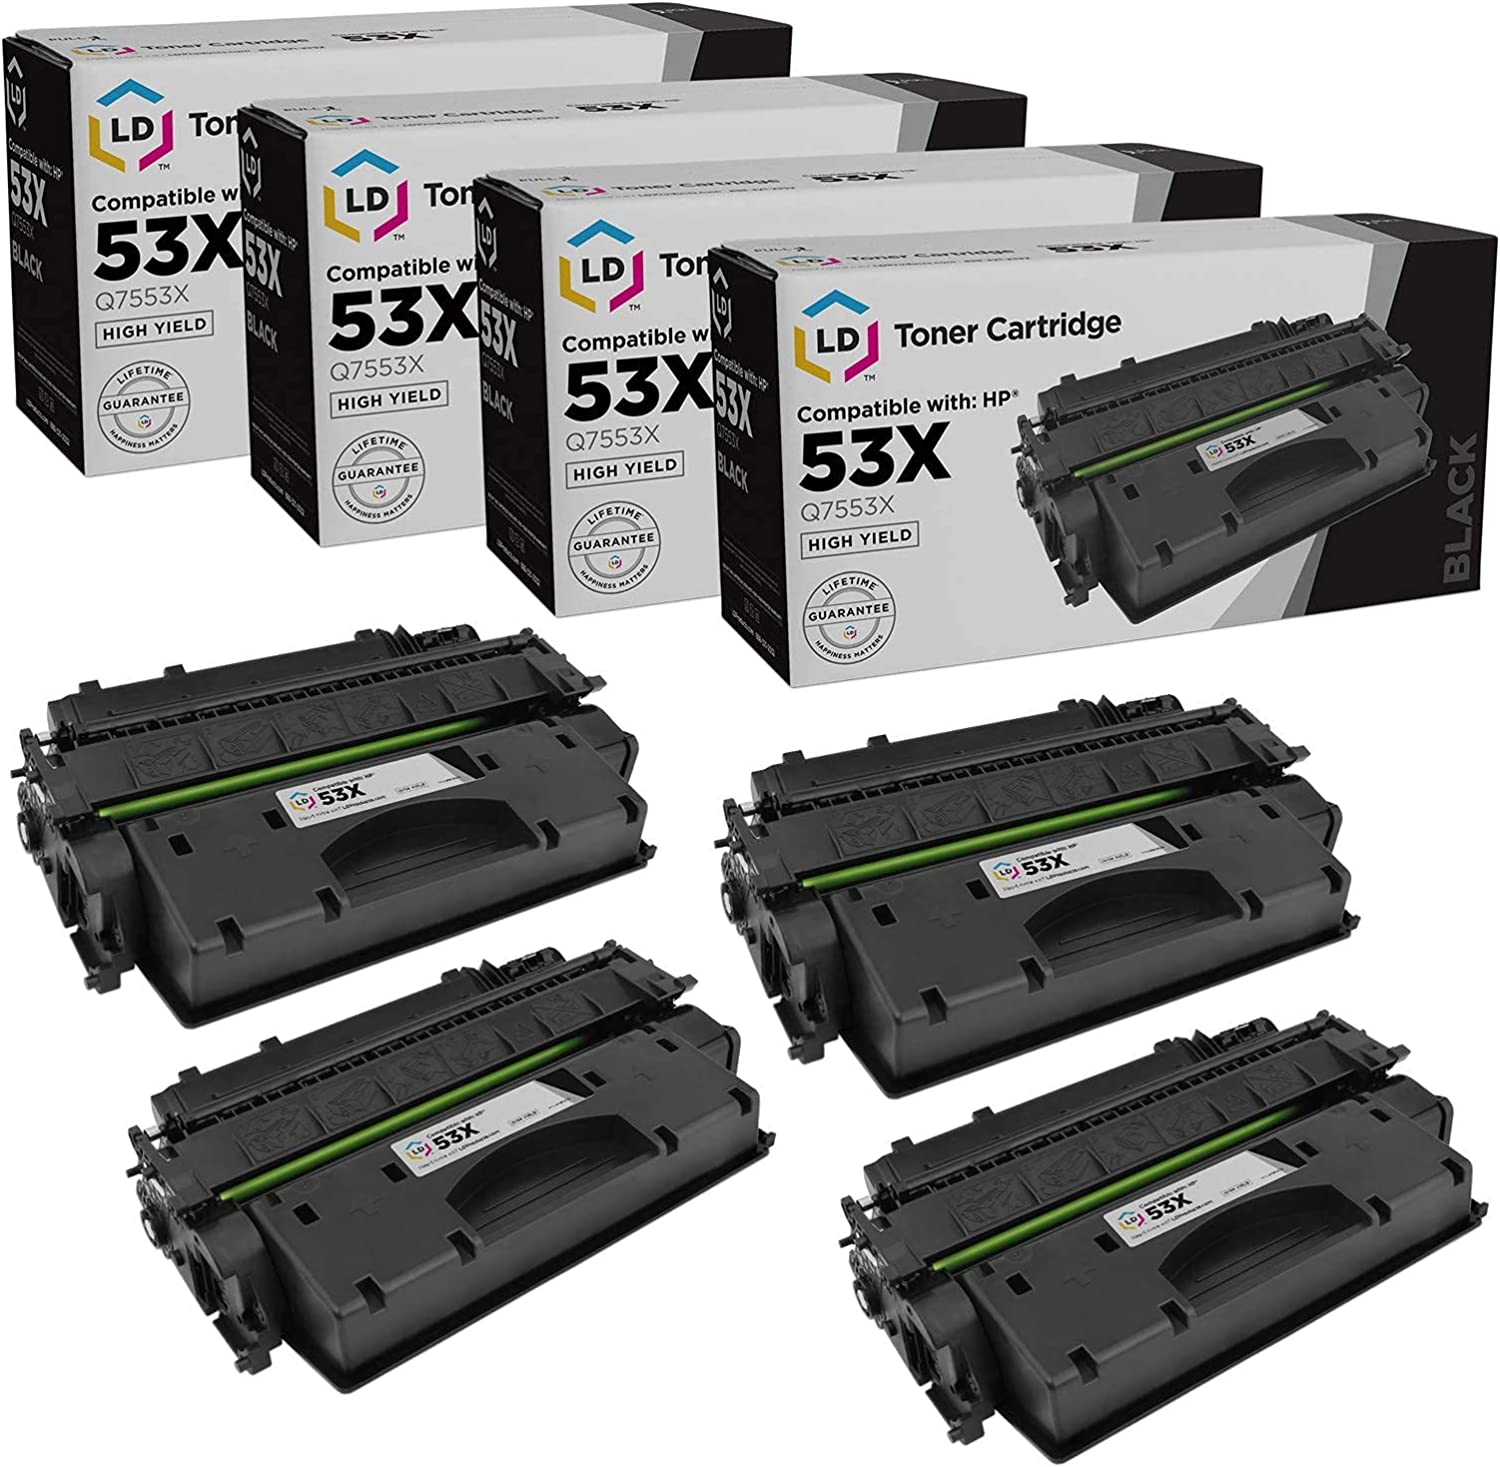 LD Compatible Toner Cartridge Replacement for HP 53X Q7553X High Yield (Black, 4-Pack)